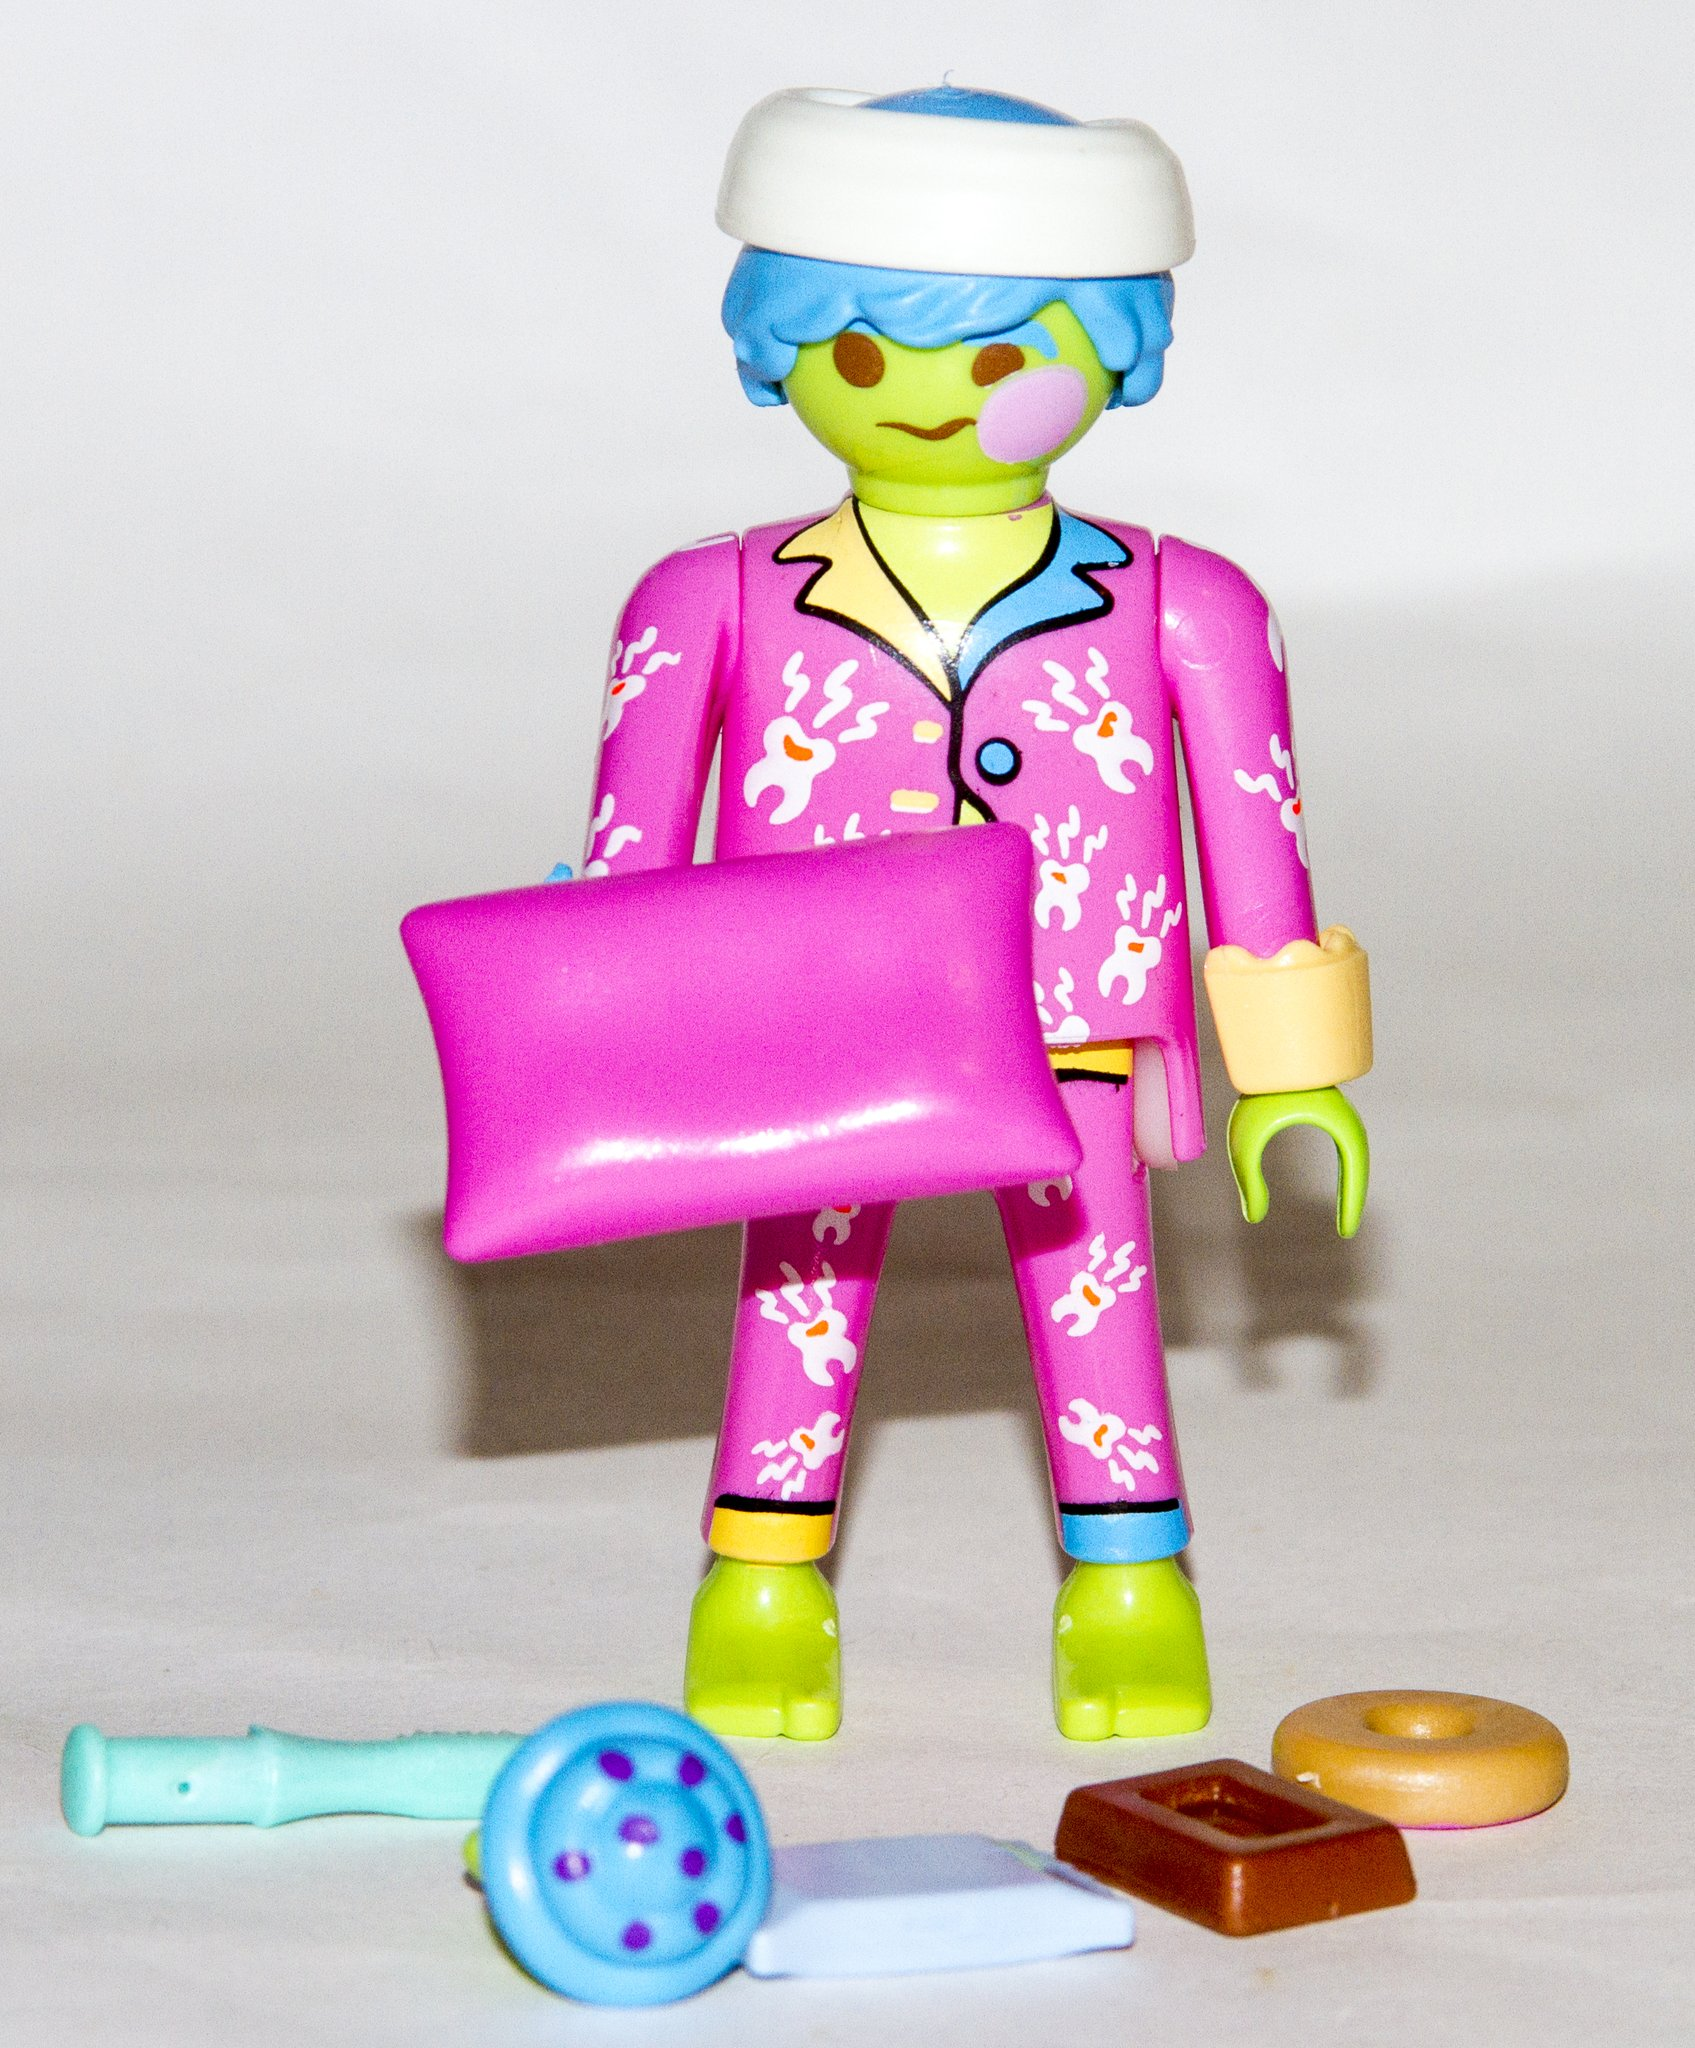 EVERDREAMERZ TOOTHACHE SERIES 1 PLAYMOBIL